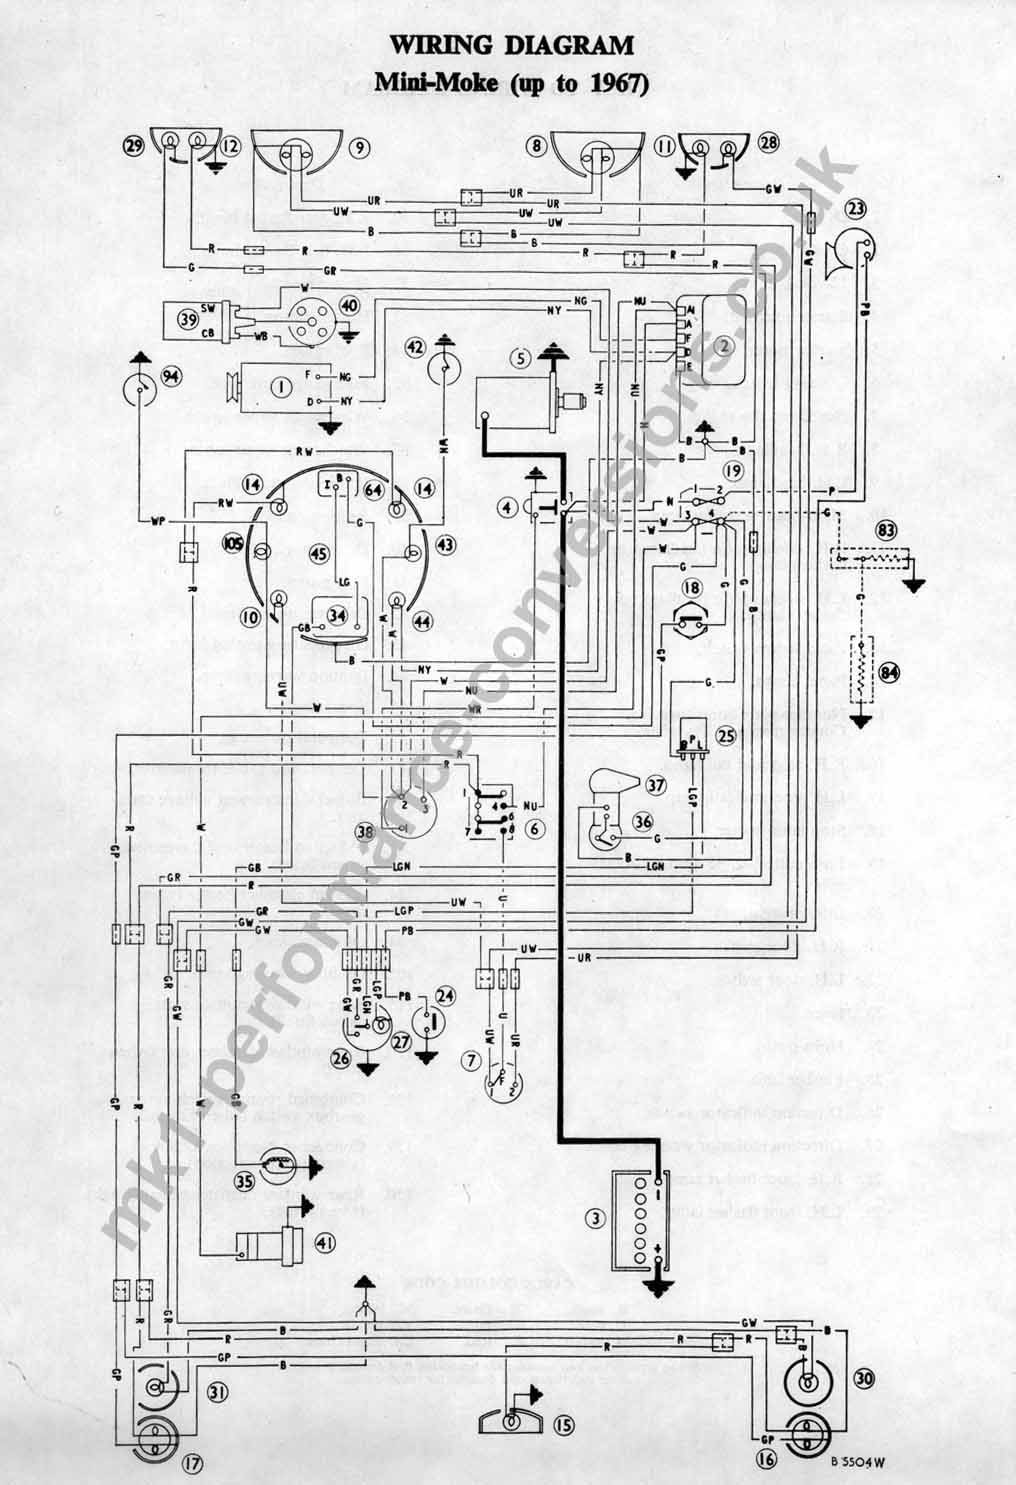 Austin 10 4 Wiring Diagram 26 Images Painless Harness Classic Mini Mk1 Moke At